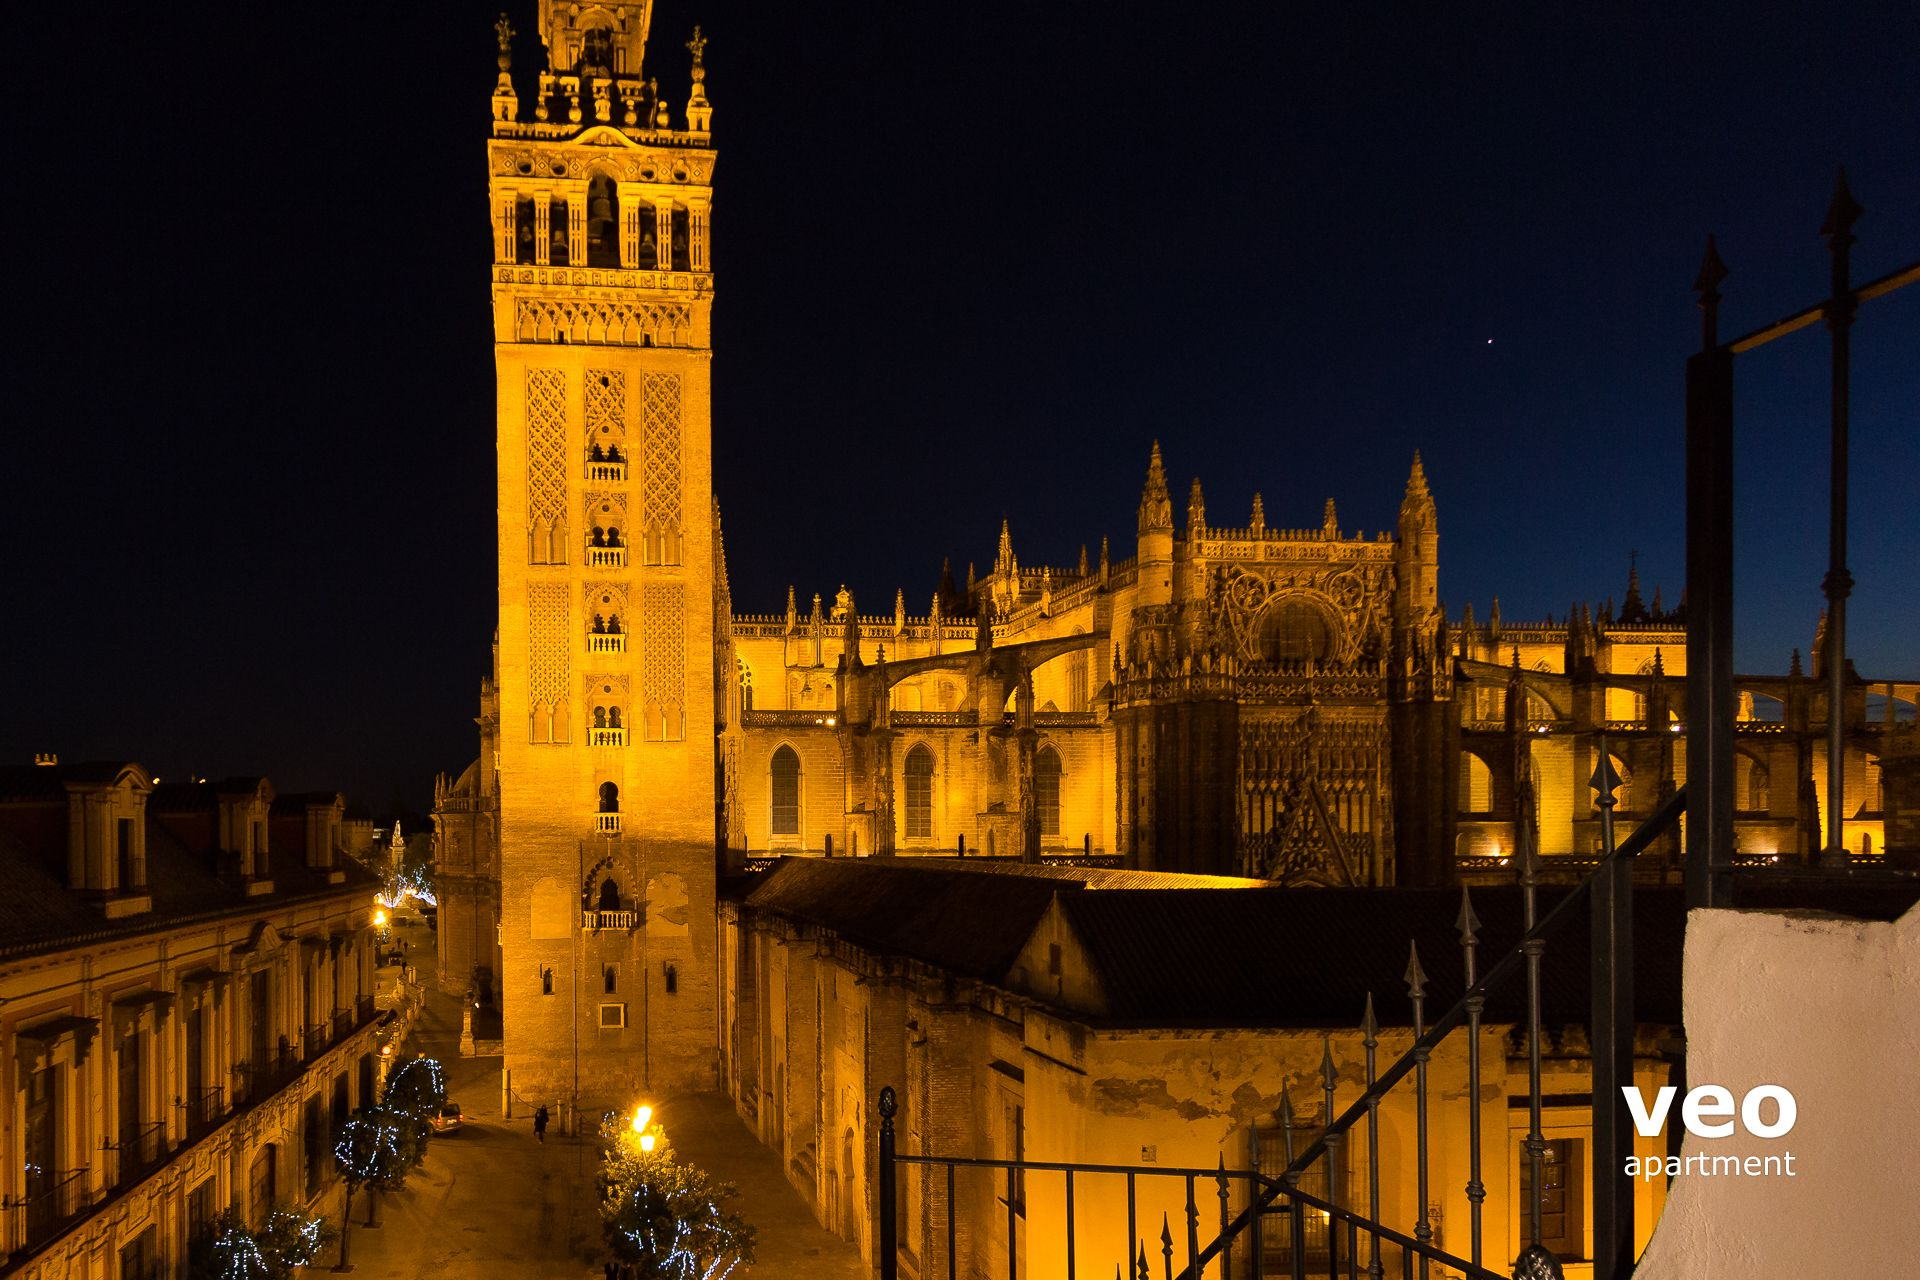 Seville Apartment Alemanes Street Seville Spain Catedral